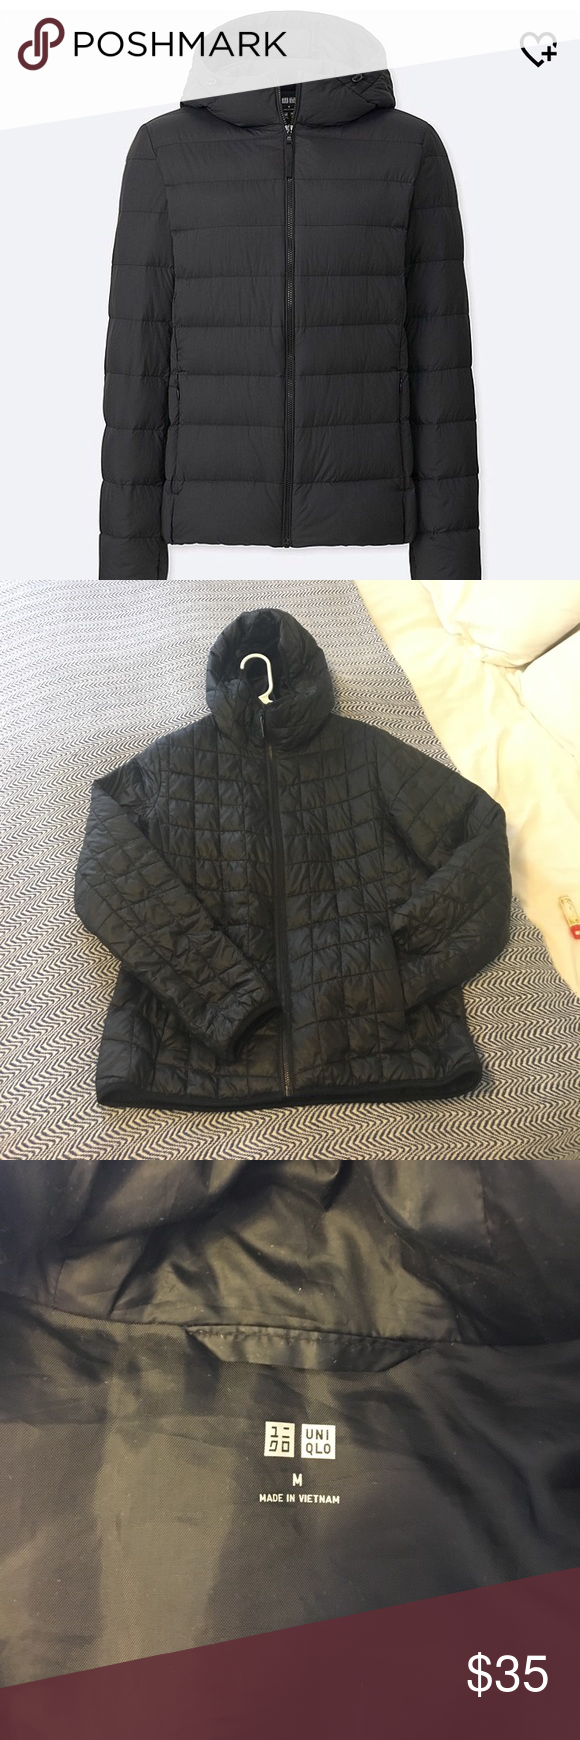 Uniqlo Short Puffer Jacket w/ Hood Jackets, Uniqlo